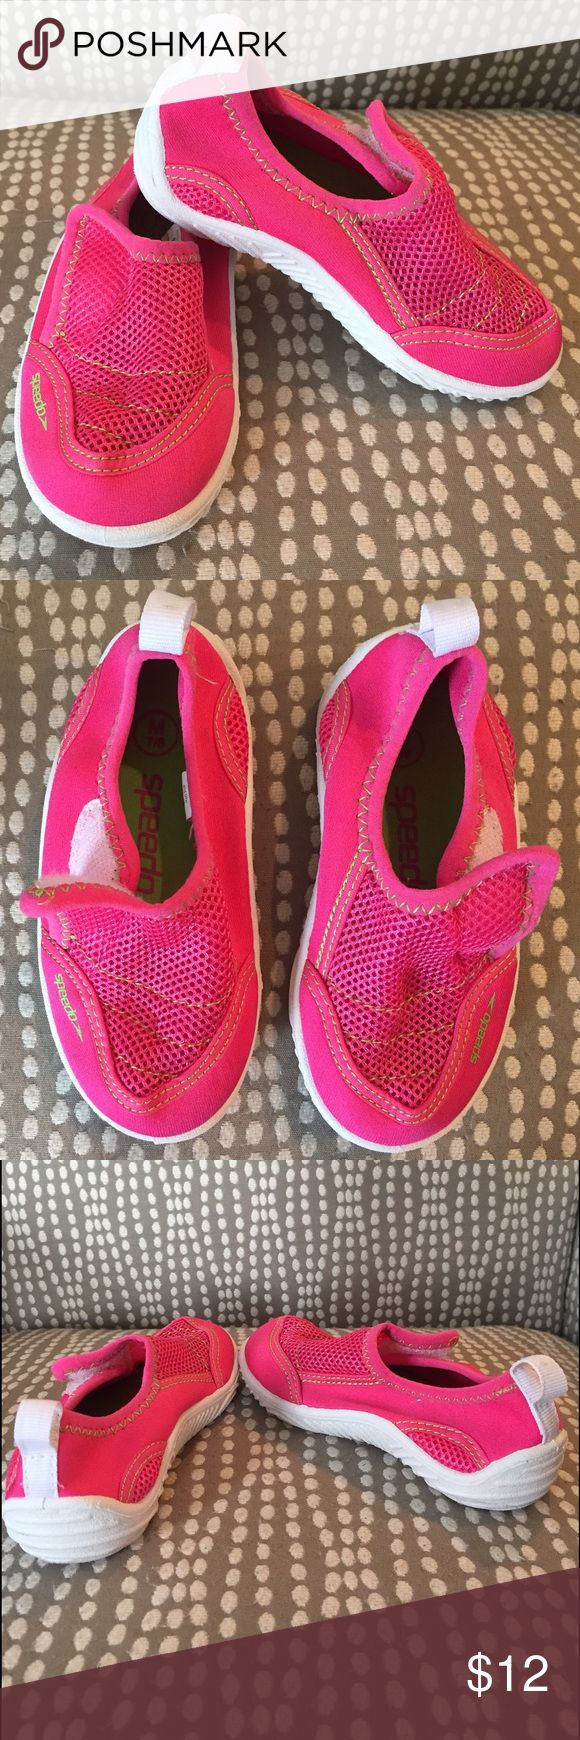 Speedo water shoes toddler girl - Size 7/8M Speedo water shoes toddler girl - Size 7/8M.  Pink/green/white.  Velcro closure.  Great condition- Worn just a few times.  Some staining on white sole from use, as shown in pictures. Speedo Shoes Water Shoes